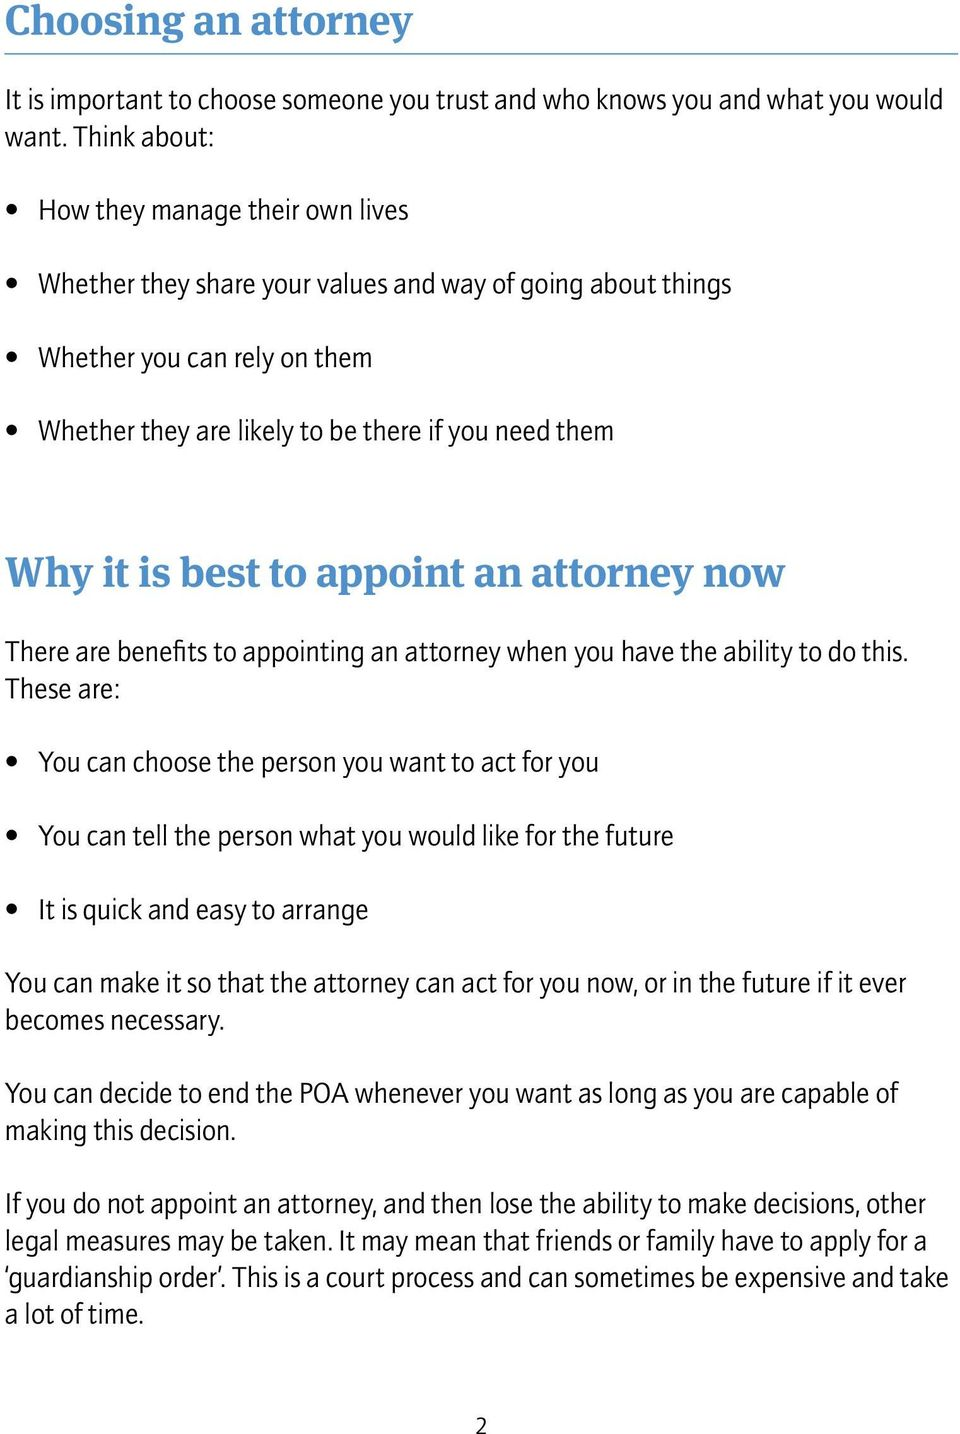 best to appoint an attorney now There are benefits to appointing an attorney when you have the ability to do this.